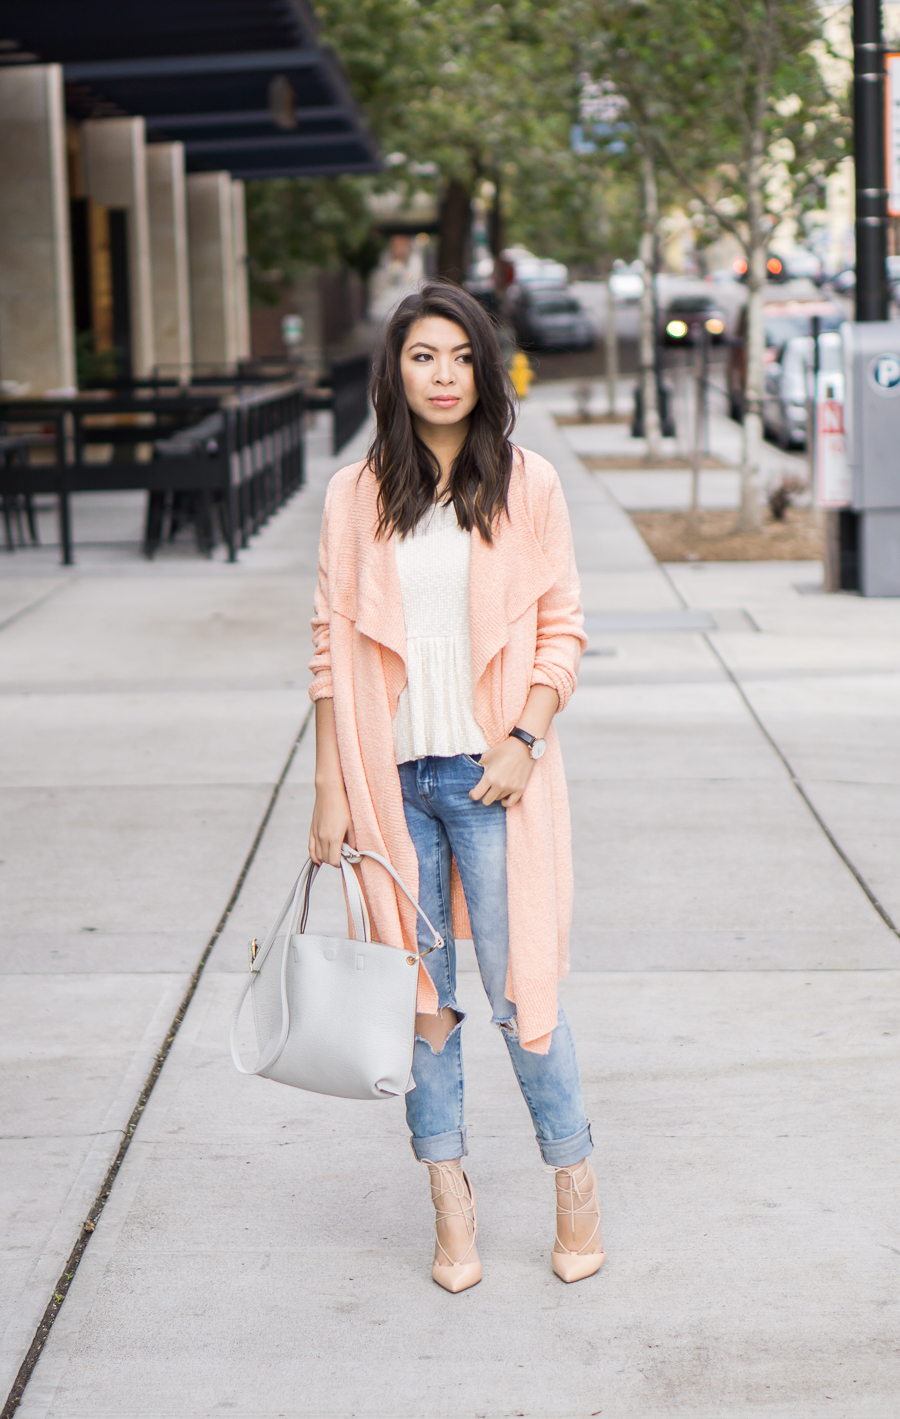 Asos pink cardigan sweater, distressed skinny jeans outfit, petite fashion blog